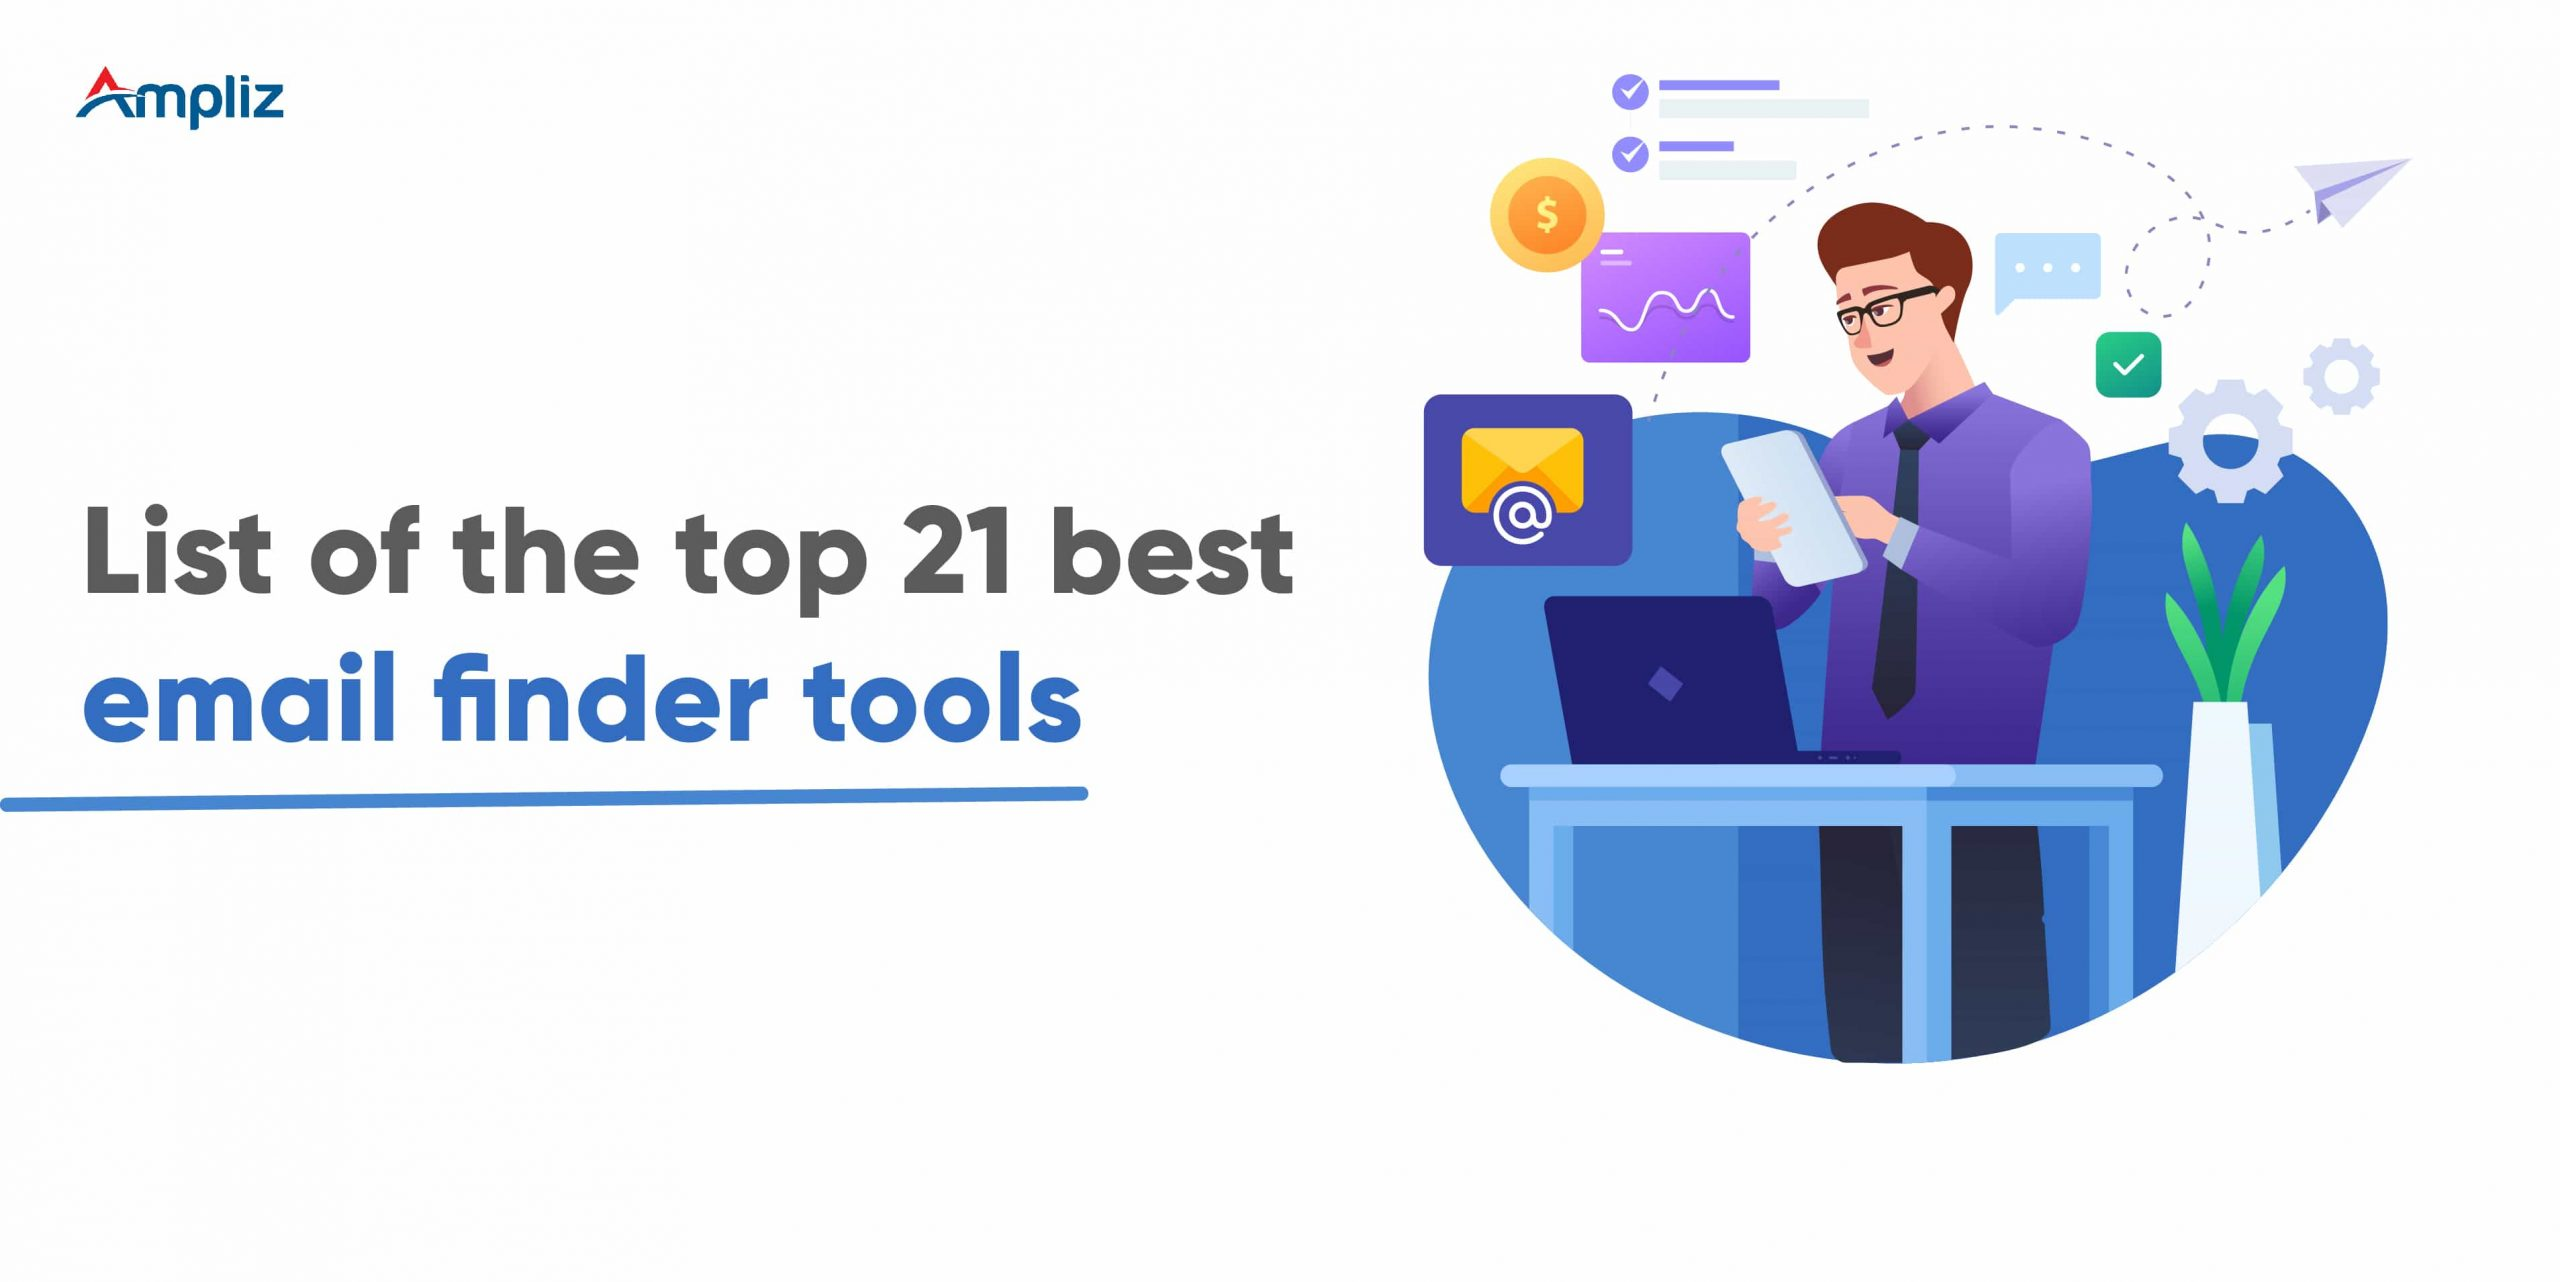 List of the top 21 best email finder tools